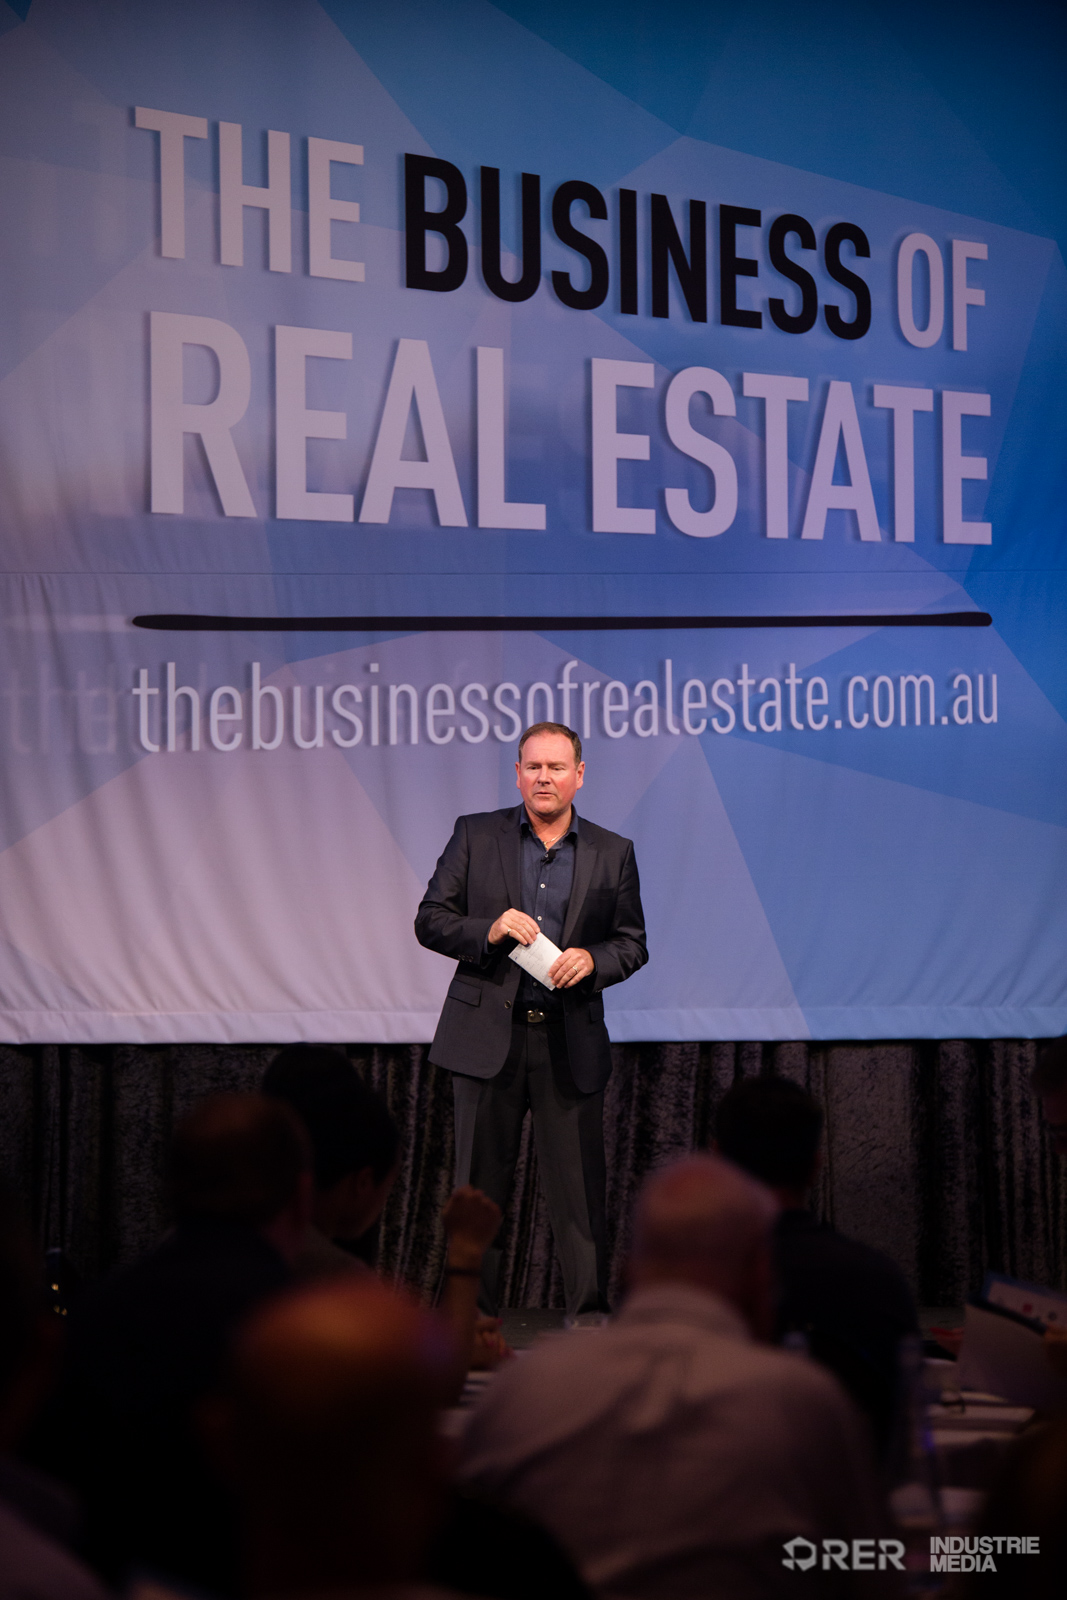 http://www.thebusinessofrealestate.com.au/wp-content/uploads/2016/09/RER_BUSINESS_OF_REAL_ESTATE_DAY_2-26.jpg